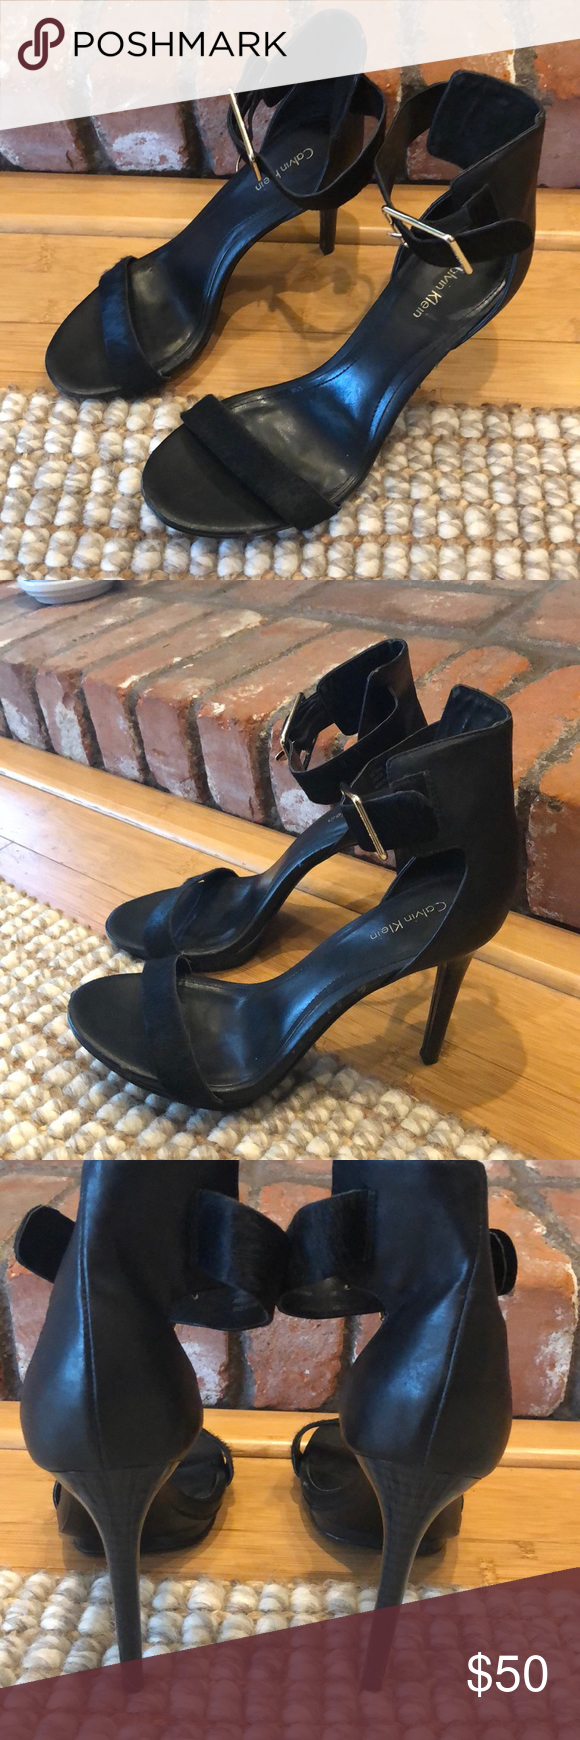 a00a1caf934 Calvin Klein Vivian Ankle Strap Sandals Gently used. The all black shoe is  hard to find and looks a lot better in than the nude base version.